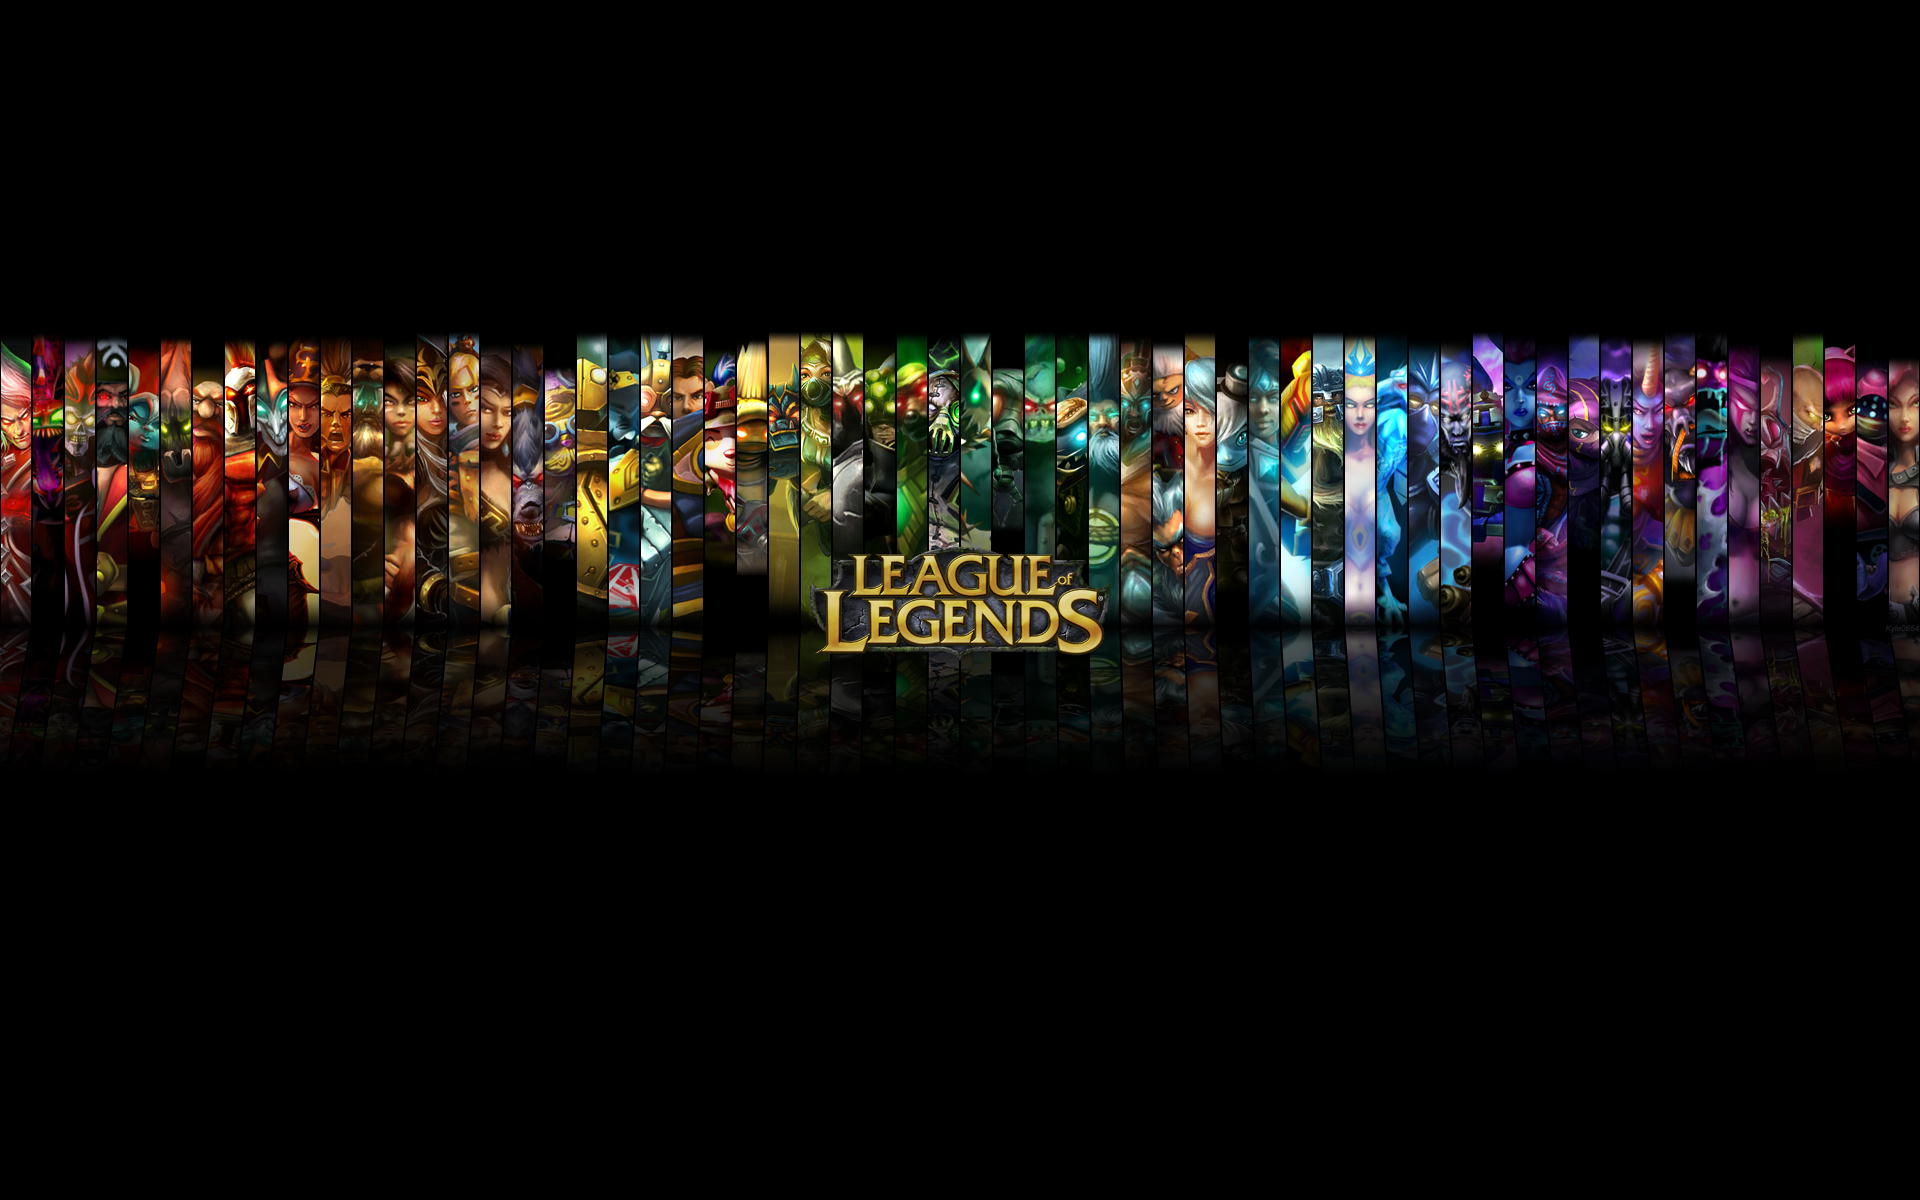 league of legemd